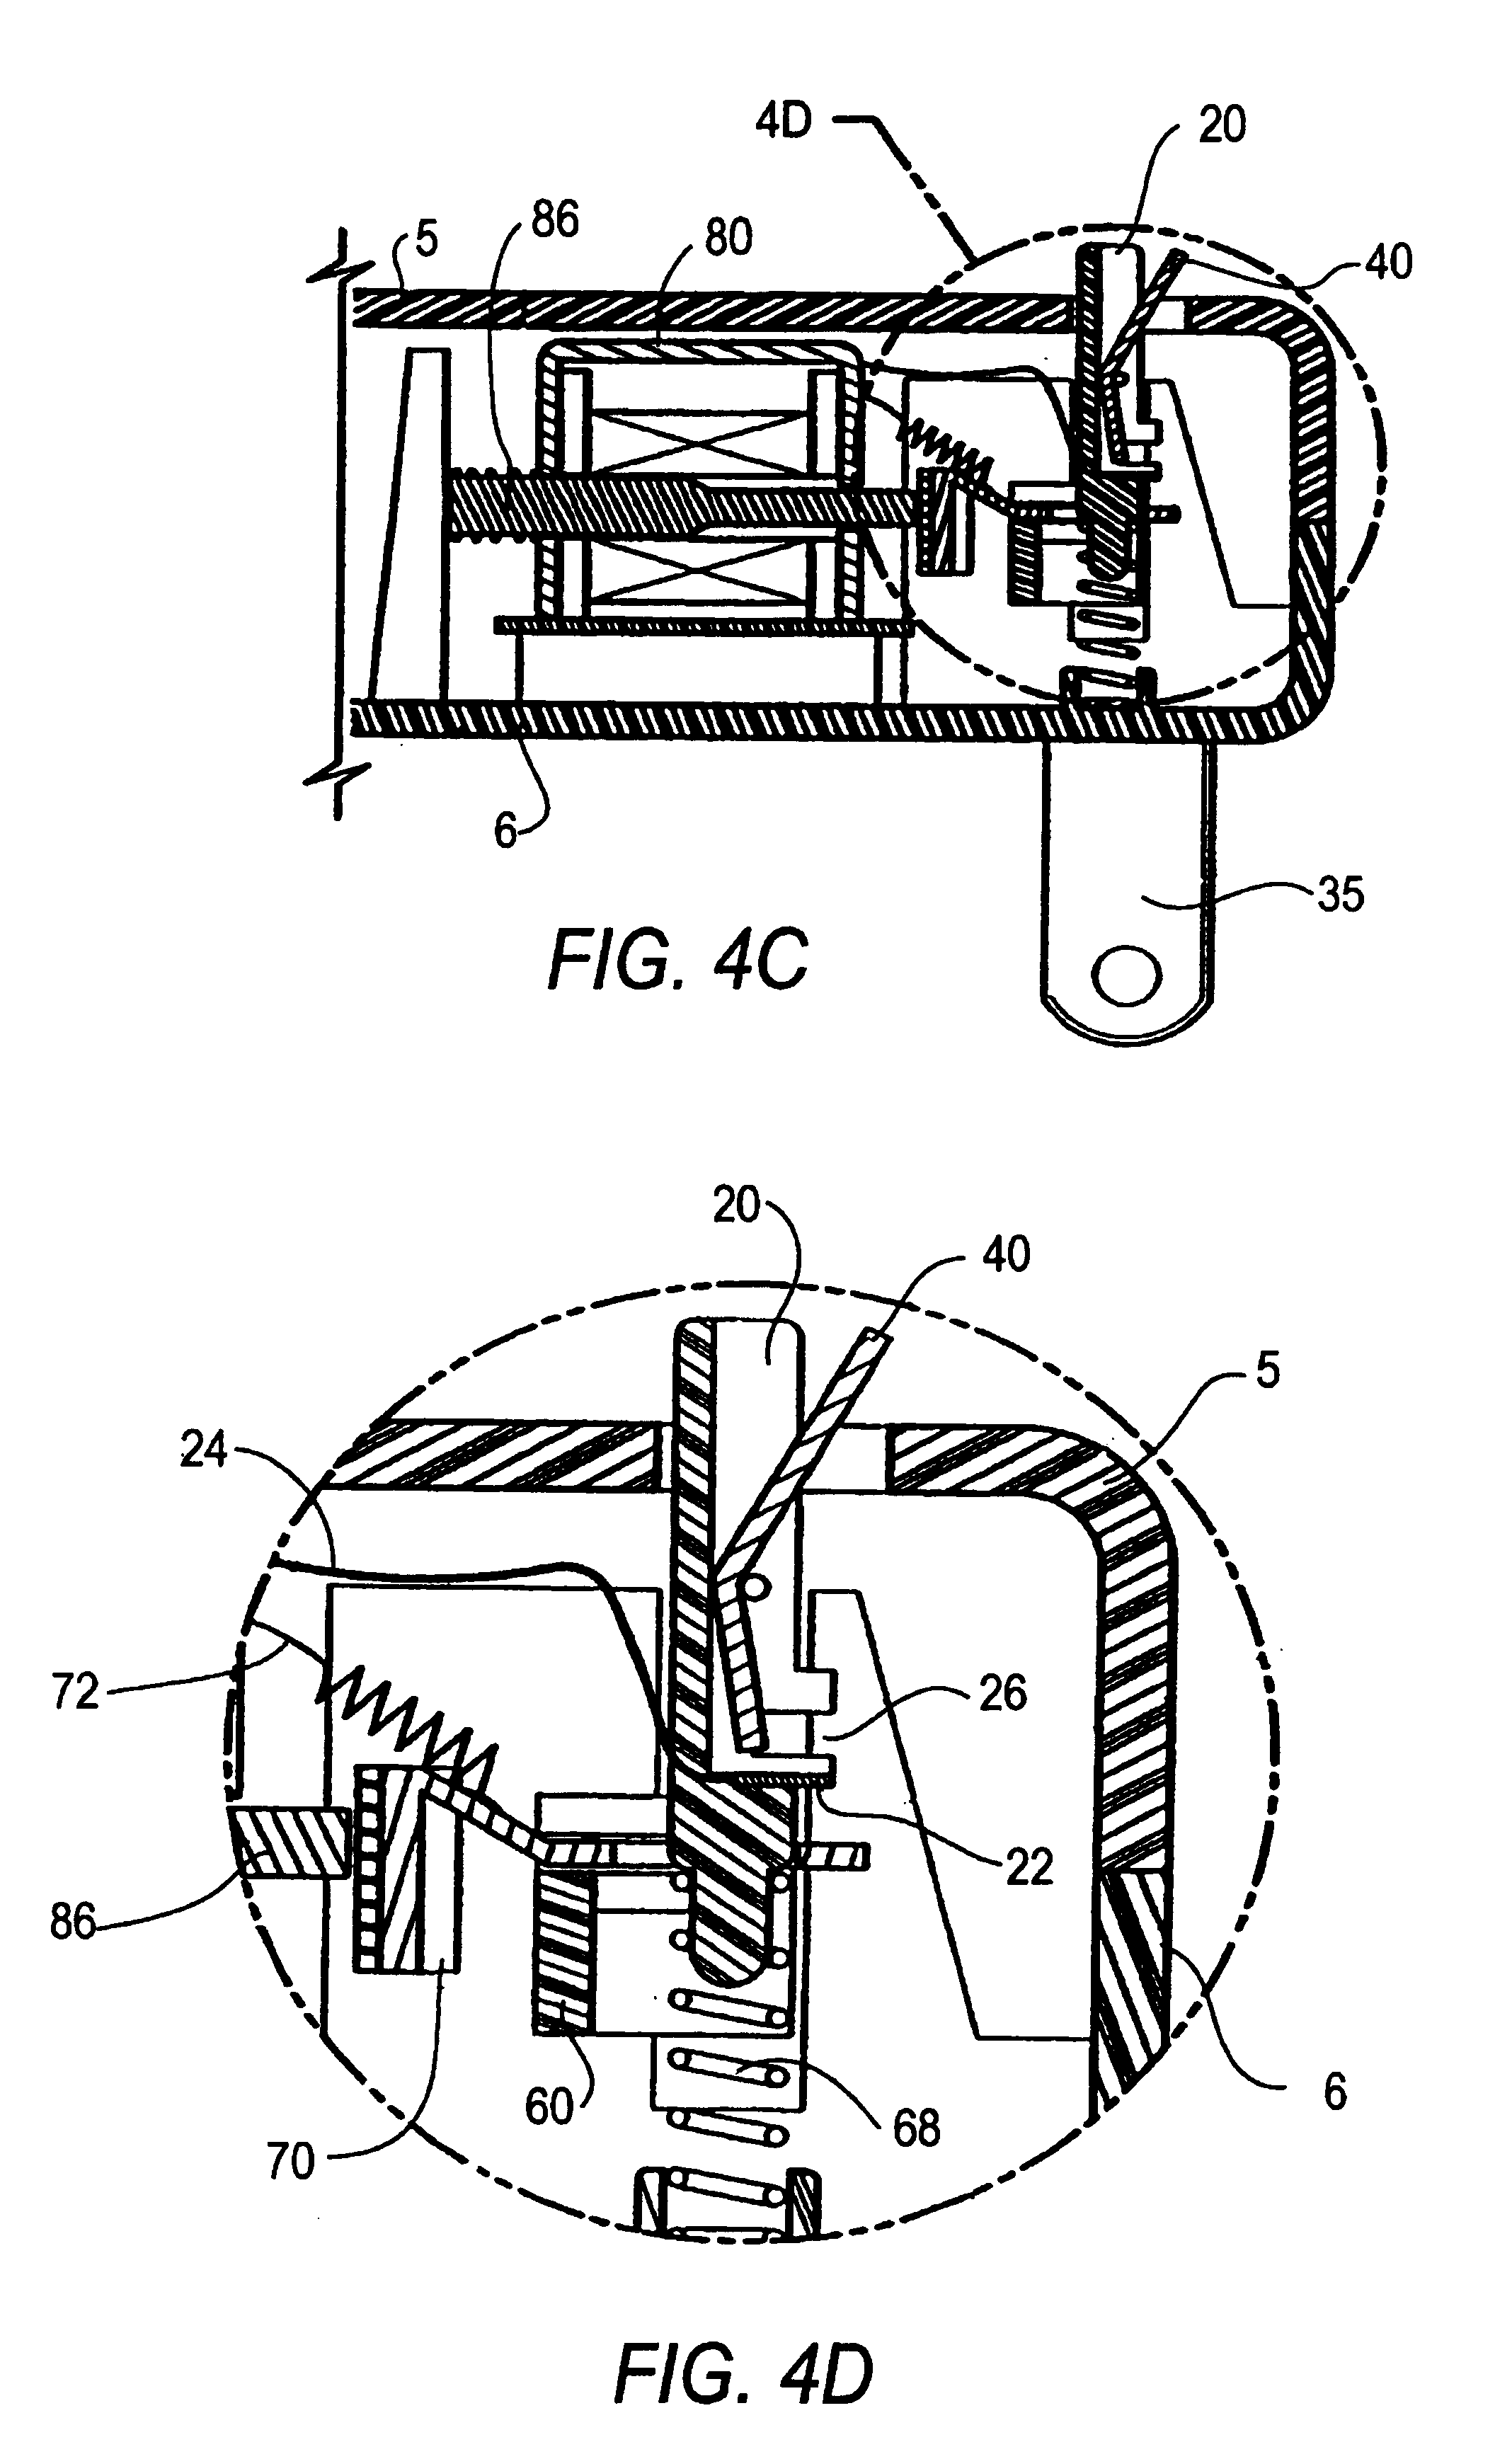 Patent Us6975192 Idci With Reset Lockout And Independent Trip Cooper Wiring Devices Inc Drawing